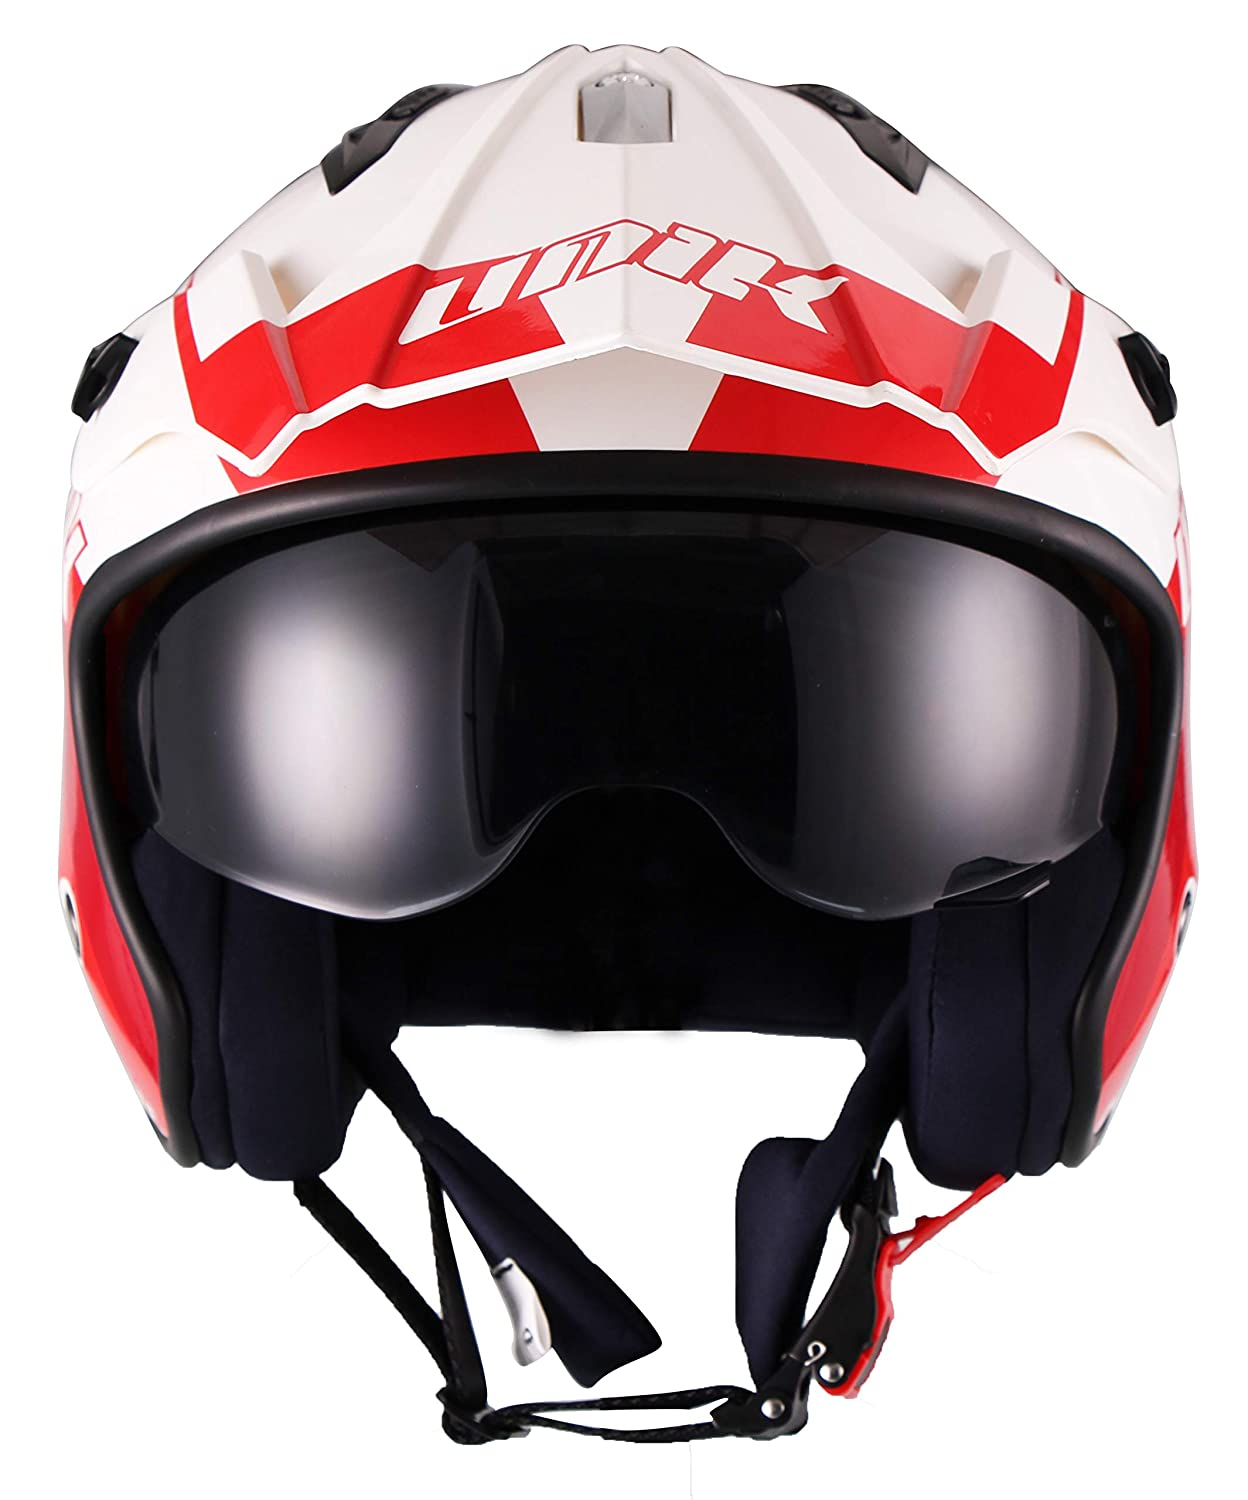 Unik Casque Jet Trial Ouvert Ct 07 R Graff Blancrougegris